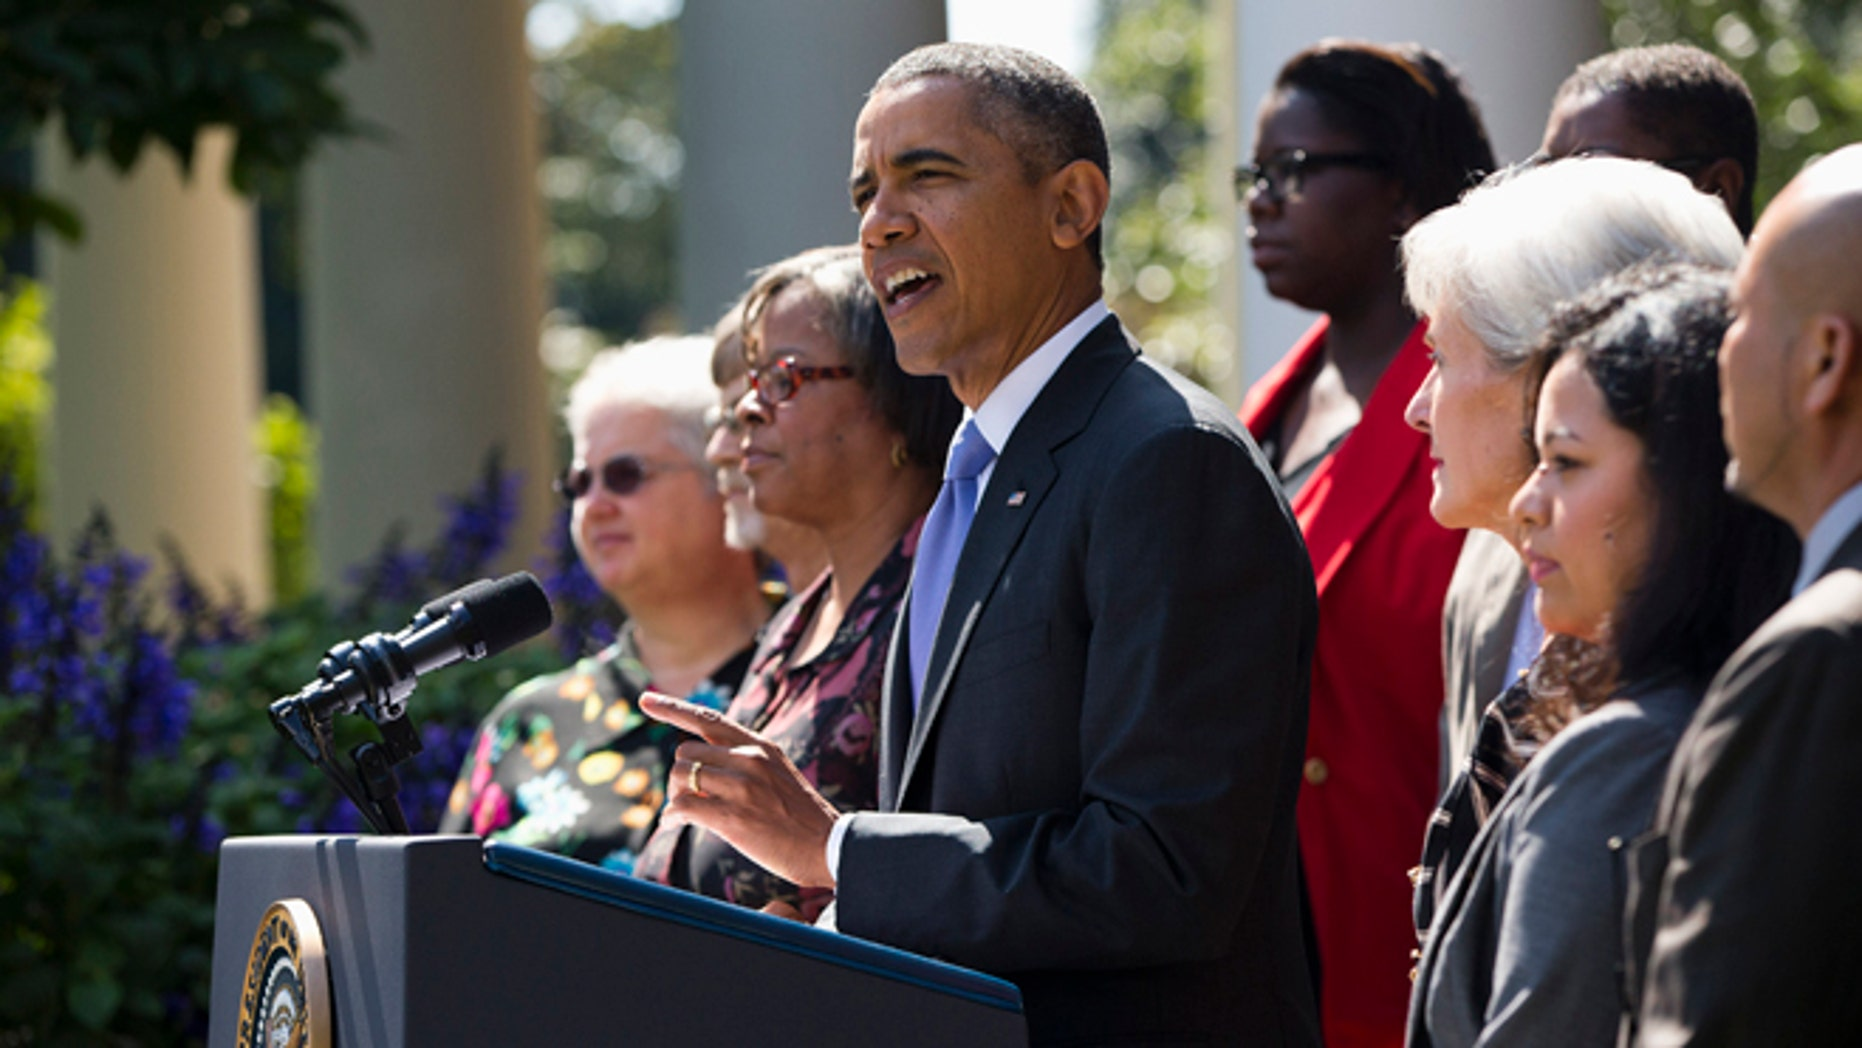 President Barack Obama gestures while speaking  in the Rose Garden of the White House in Washington, Tuesday, Oct. 1, 2013, to talk about the government shutdown. Congress plunged the nation into a partial government shutdown Tuesday as a protracted dispute over Obama's signature health care law reached a boiling point, forcing some 800,000 federal workers off the job.  (AP Photo/ Evan Vucci)